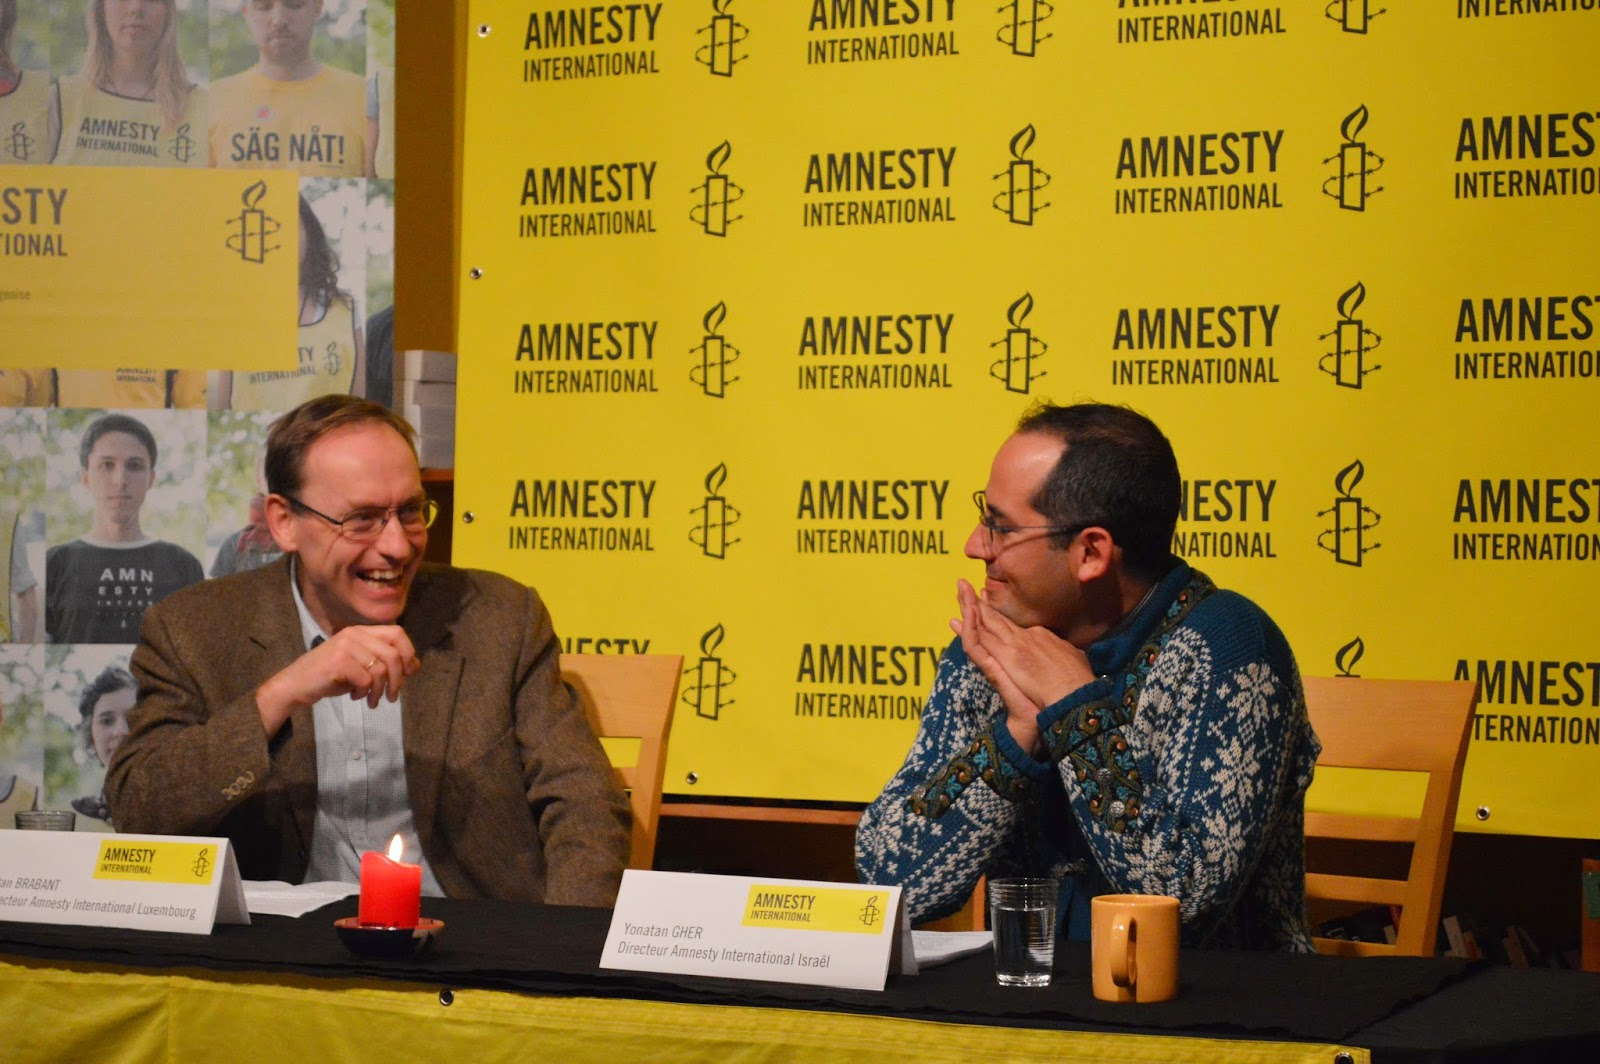 http://amnesty-luxembourg-photos.blogspot.com/2014/11/conference-with-yonatan-gher-about.html